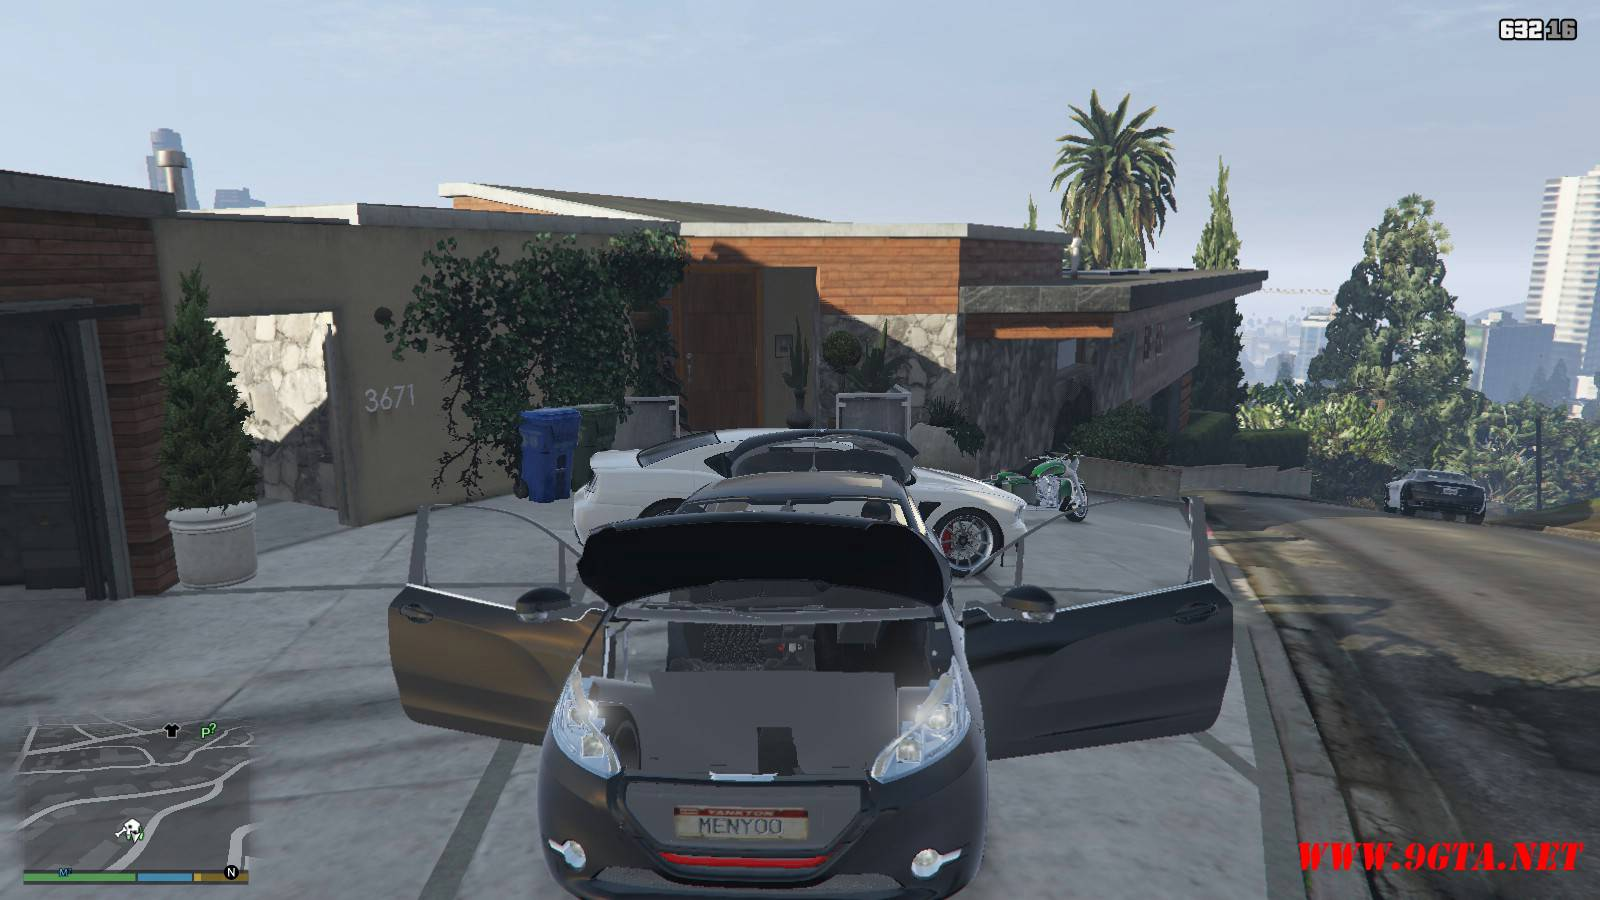 Peugeot 208 Mod For GTA5 (19)